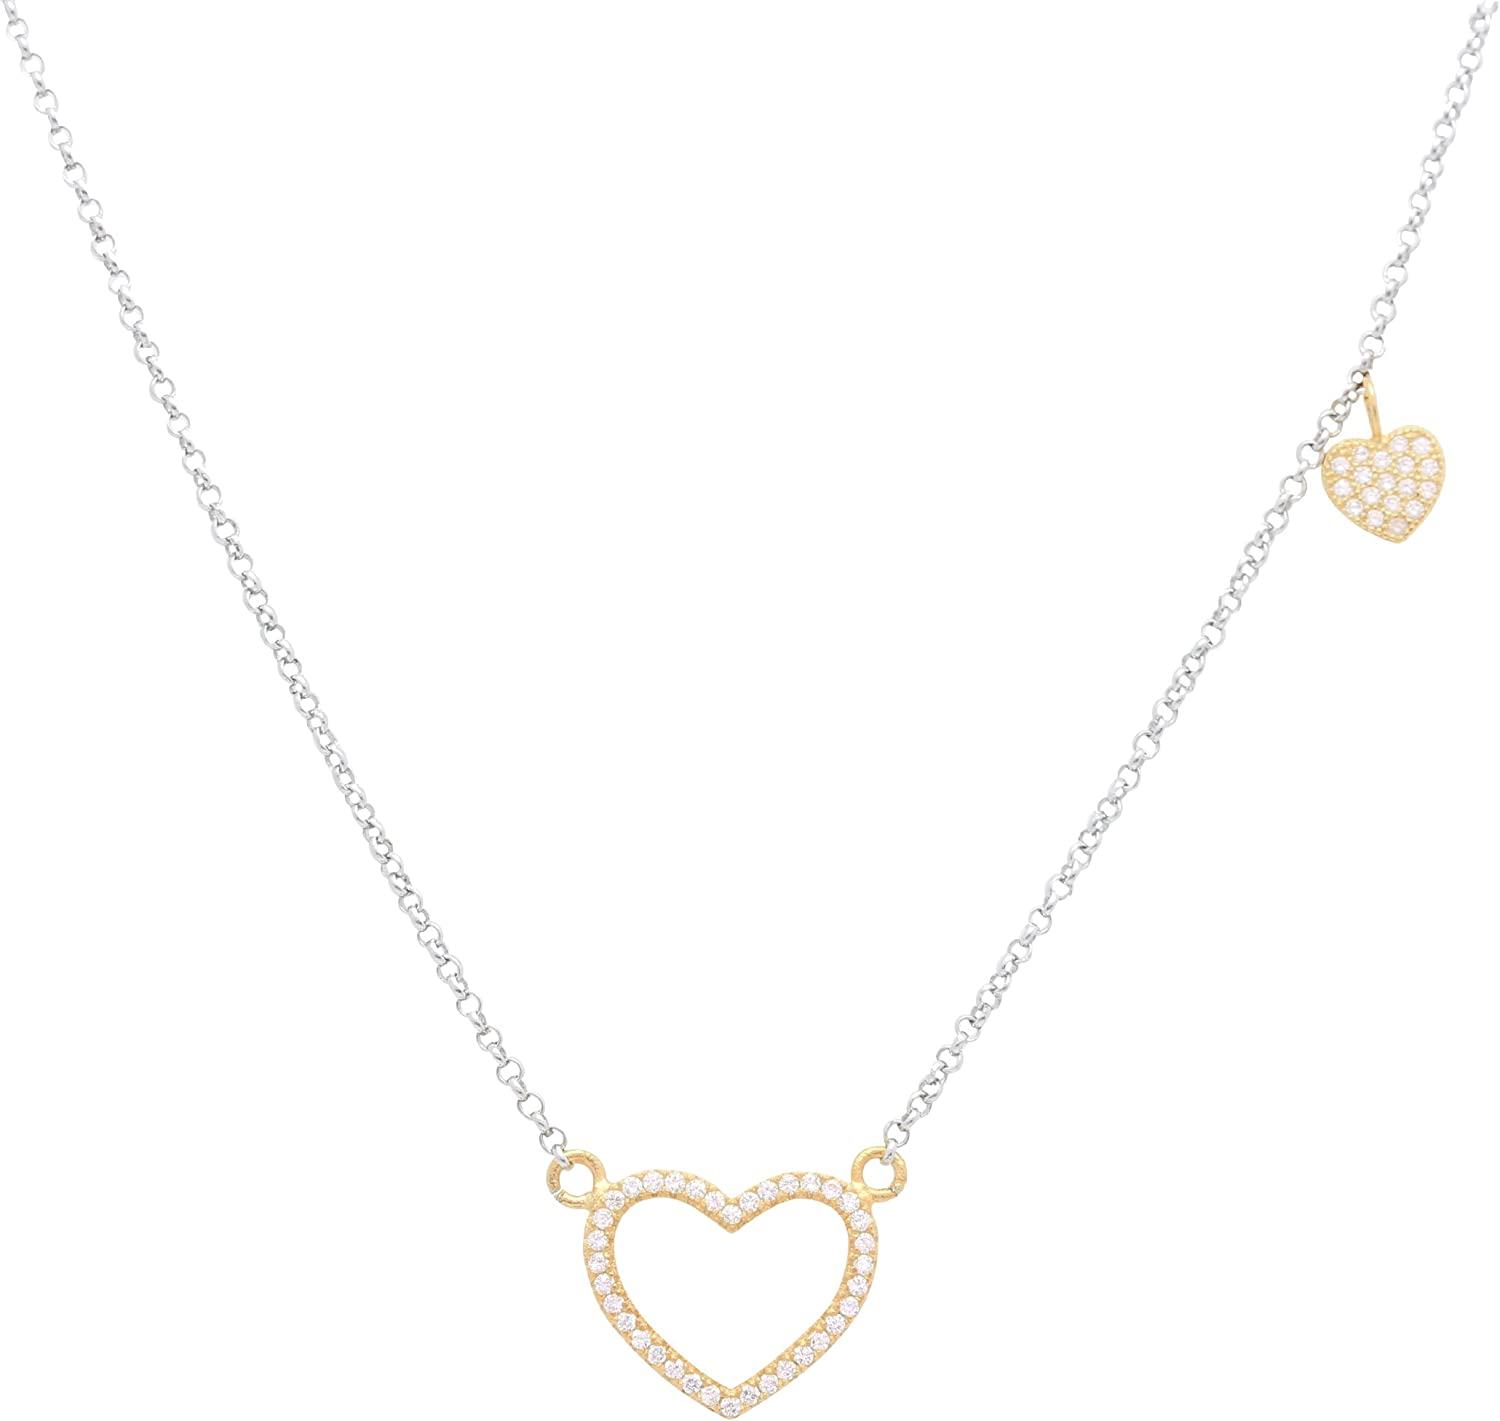 """Sterling Silver 925 Open Heart Necklace Pendant Girls Teens Cubic Zirconia 15"""" Strong Rolo Chain ItalyUnicornJ"""